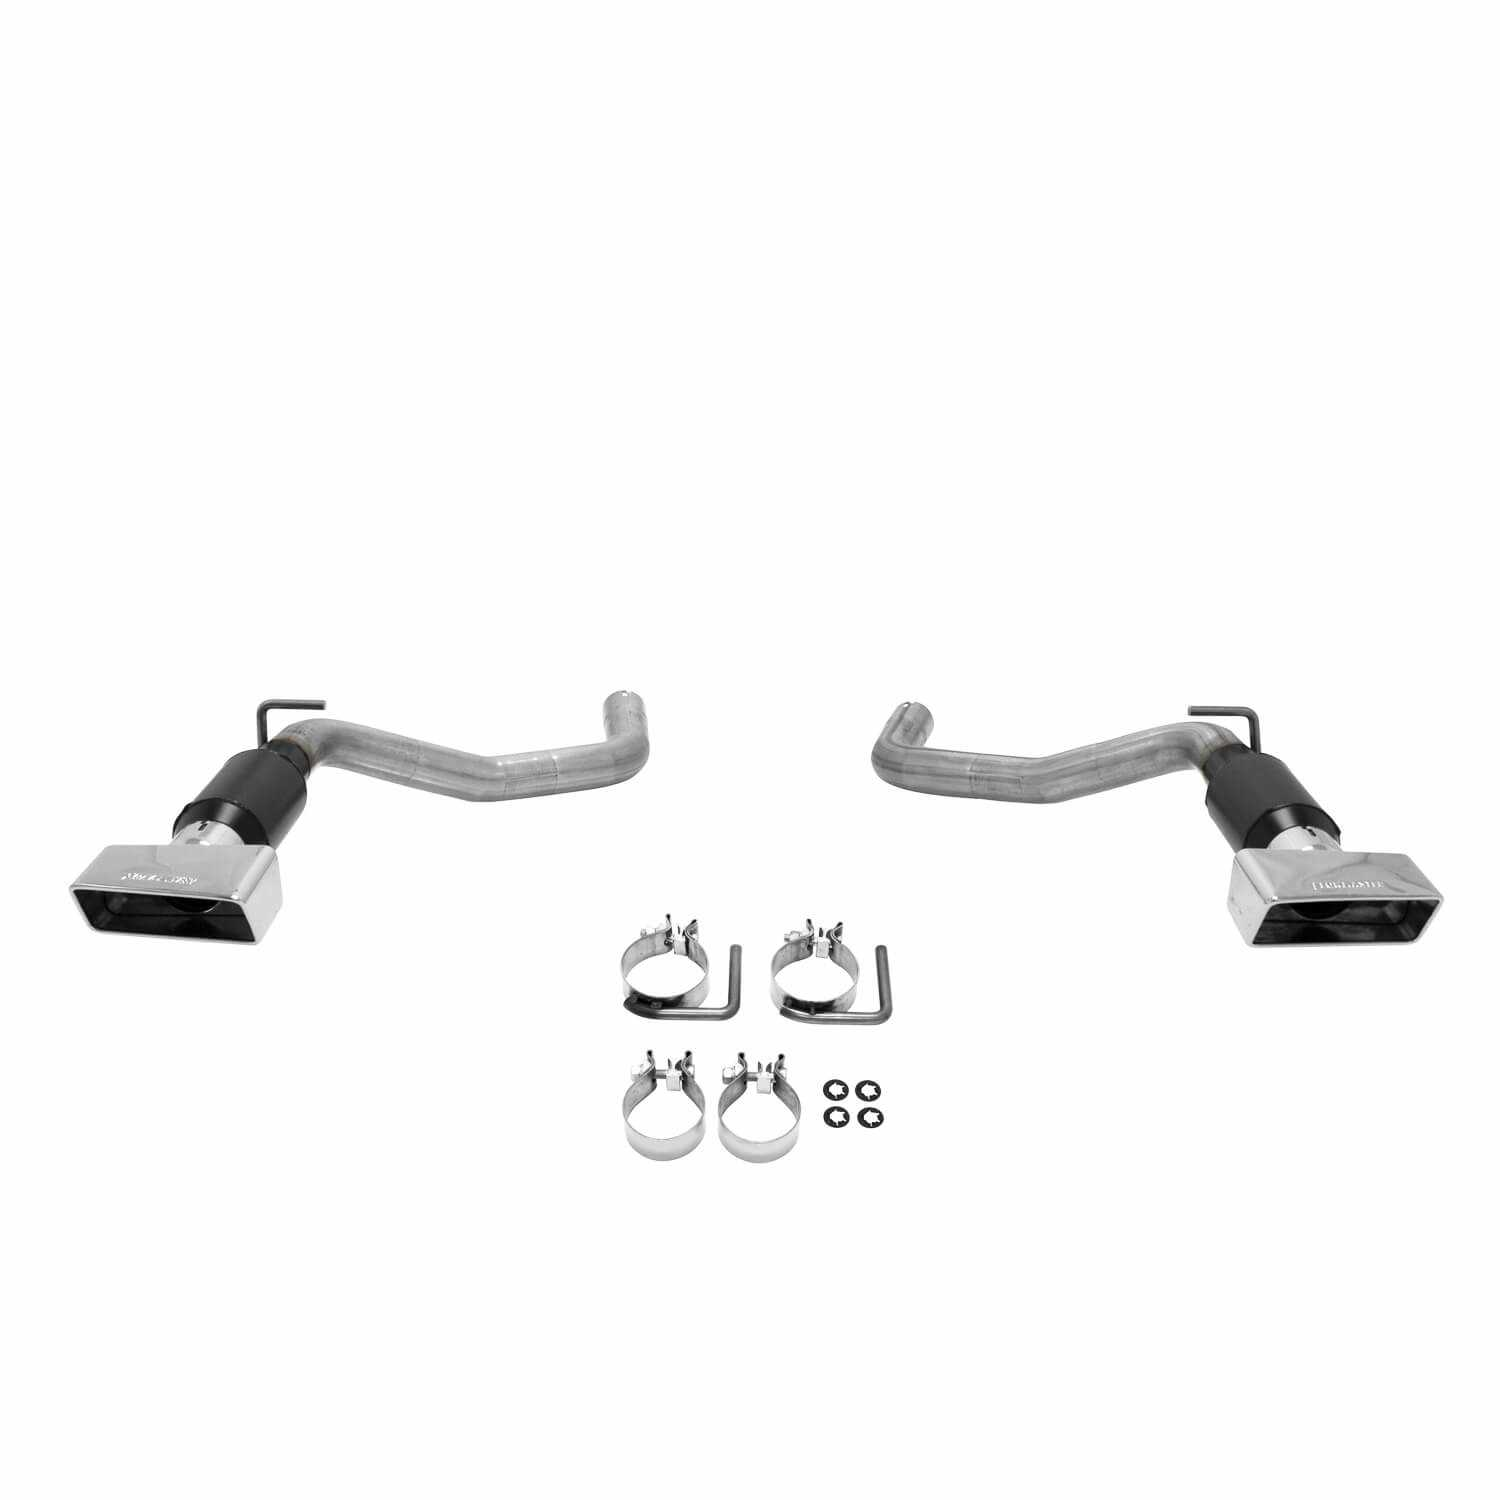 817721 Flowmaster Outlaw Series™ Axle Back Exhaust System